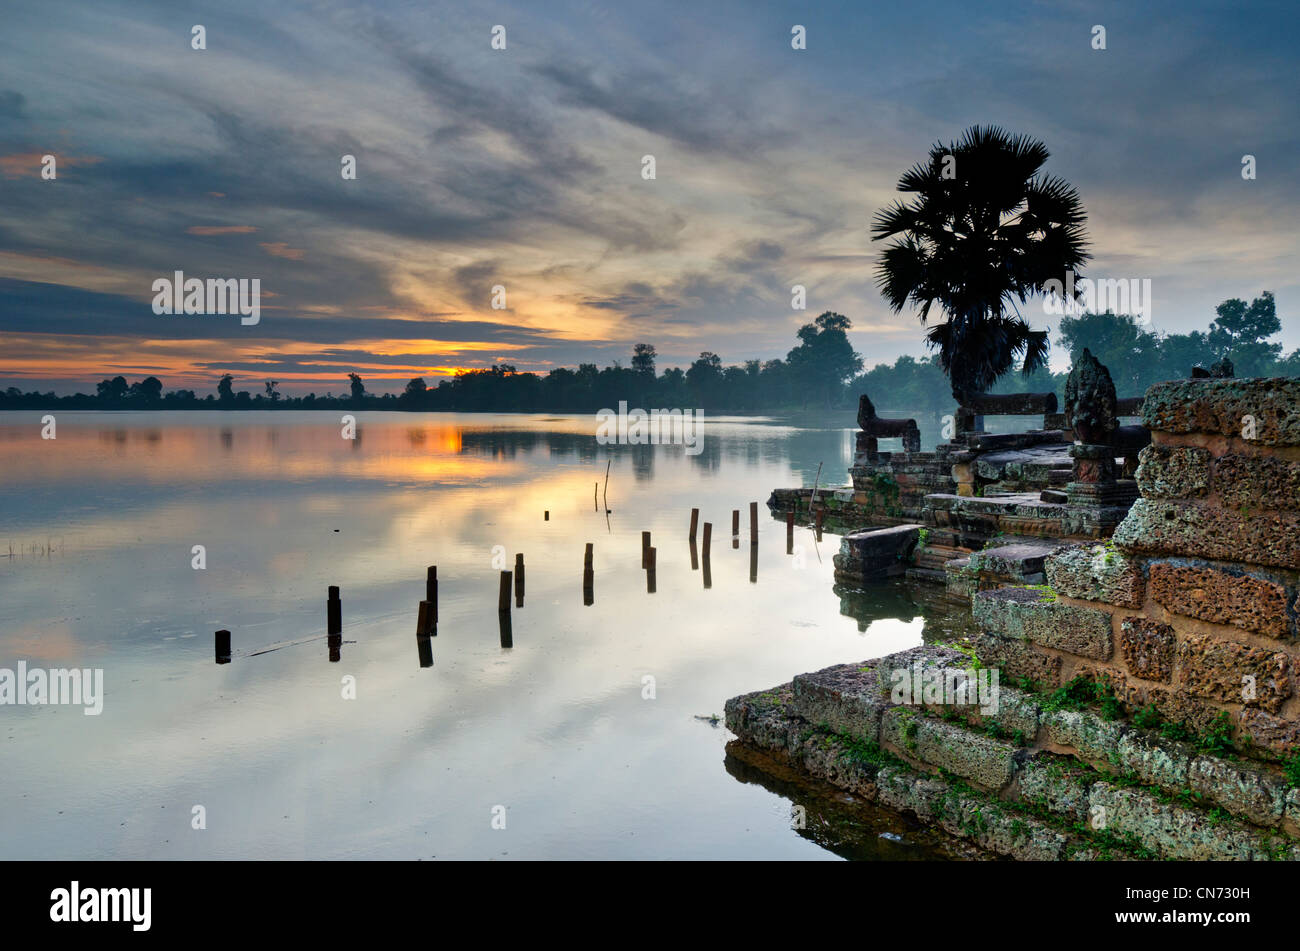 Sunrise from Srah Srang Temple over Moat, Ankor Wat, Cambodia Stock Photo